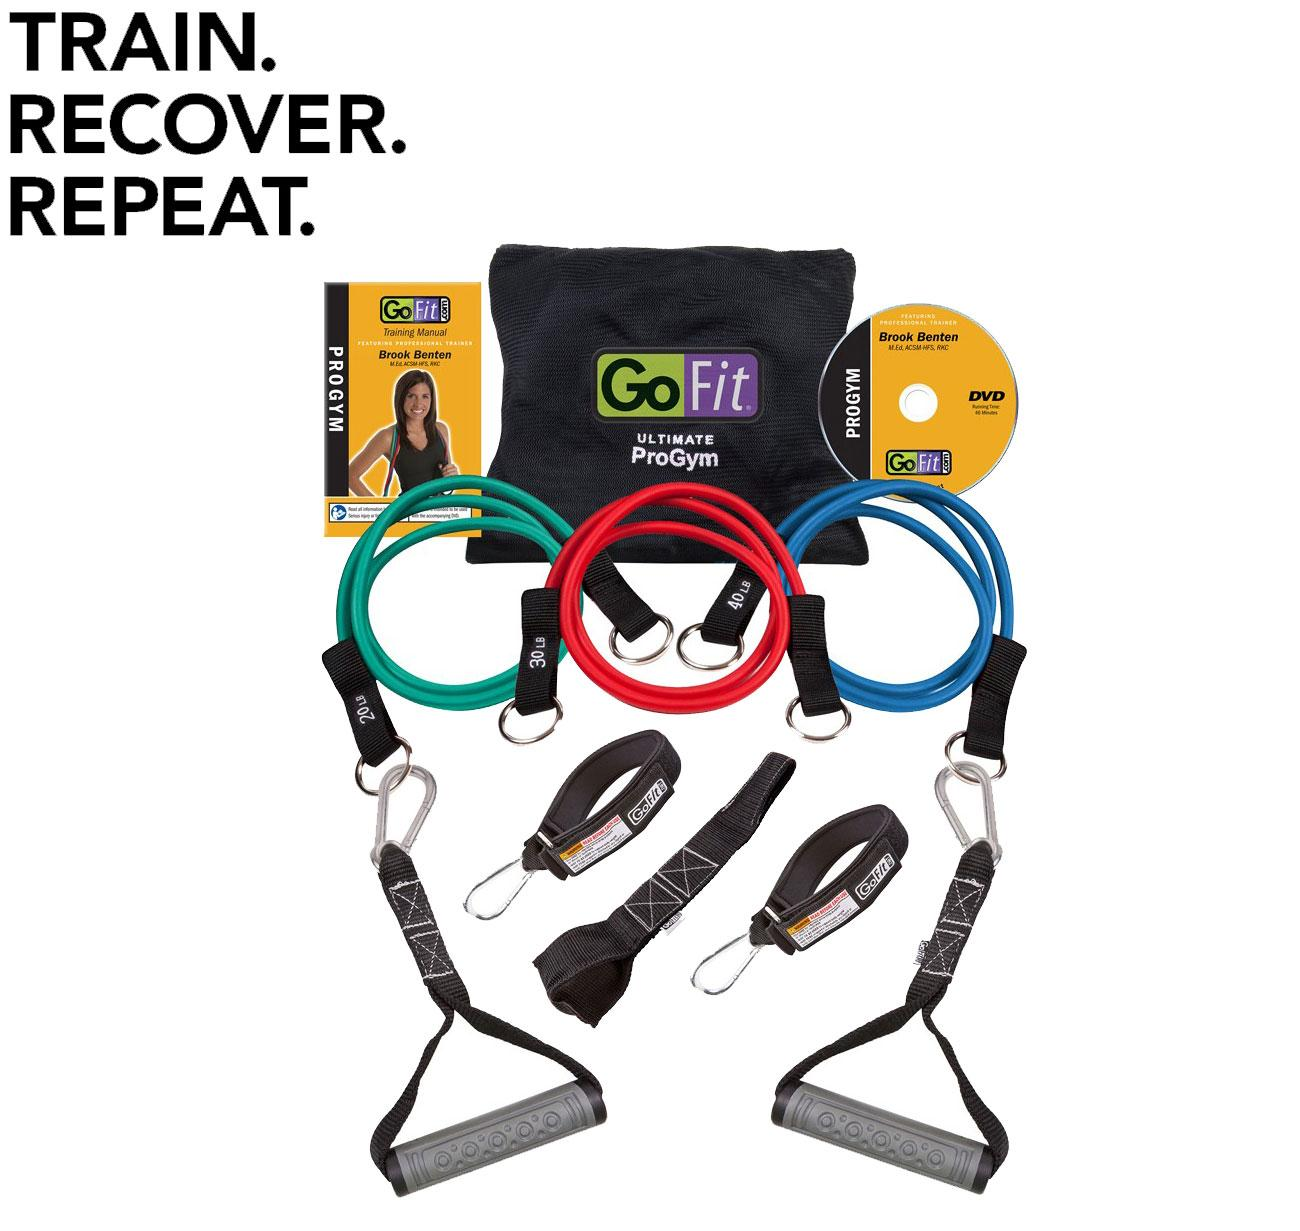 Resistance Bands Meaning: New GoFit Pro Gym Resistance Band Set Go Fit Exercise